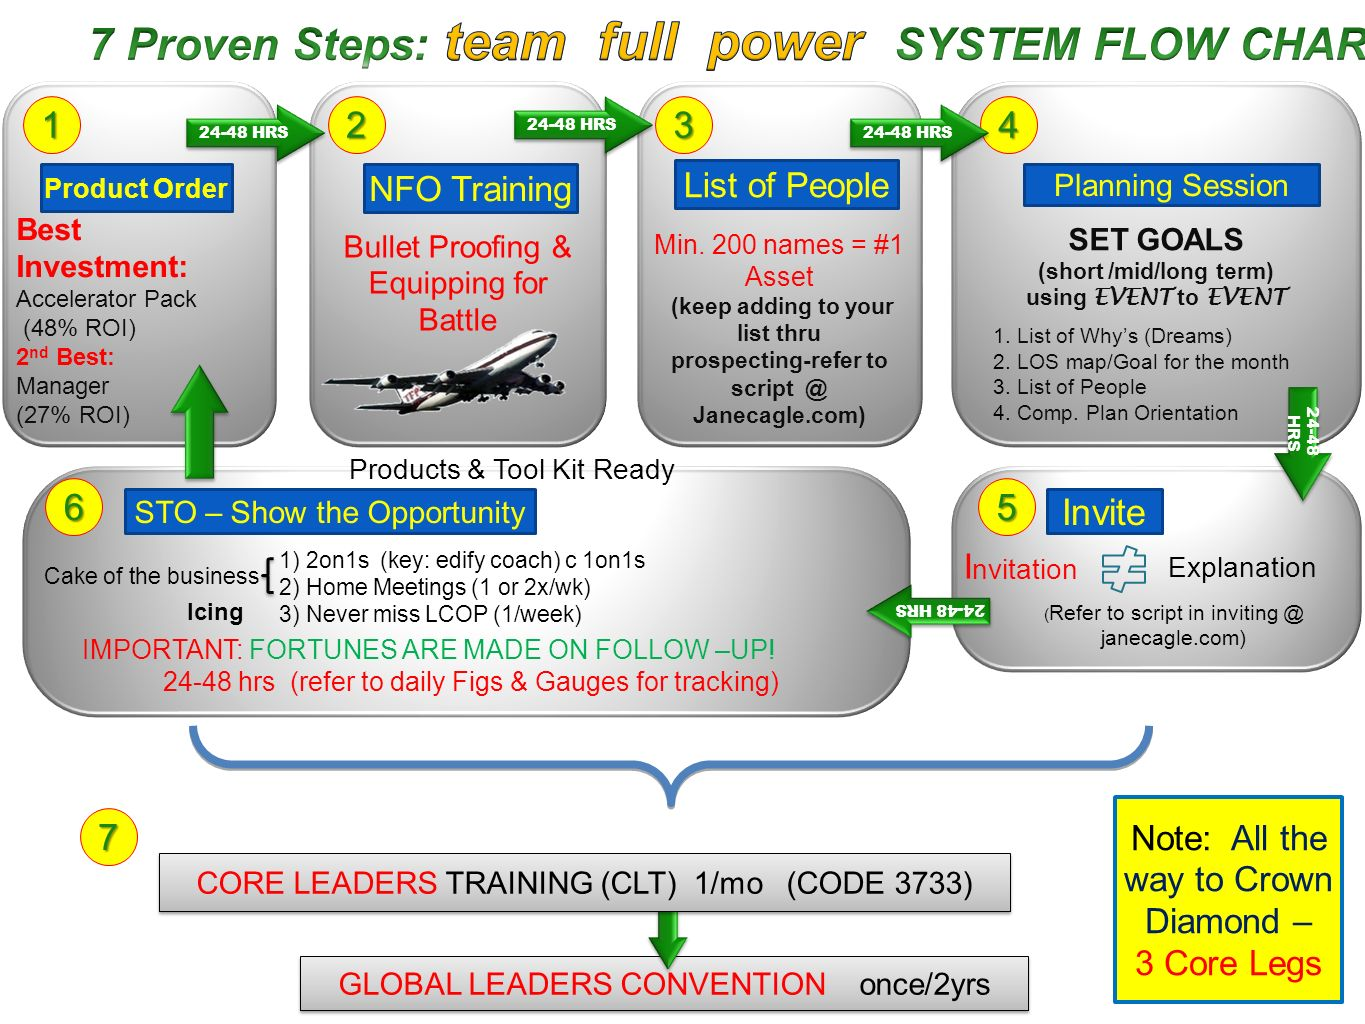 7 Proven Steps: team full power SYSTEM FLOW CHART